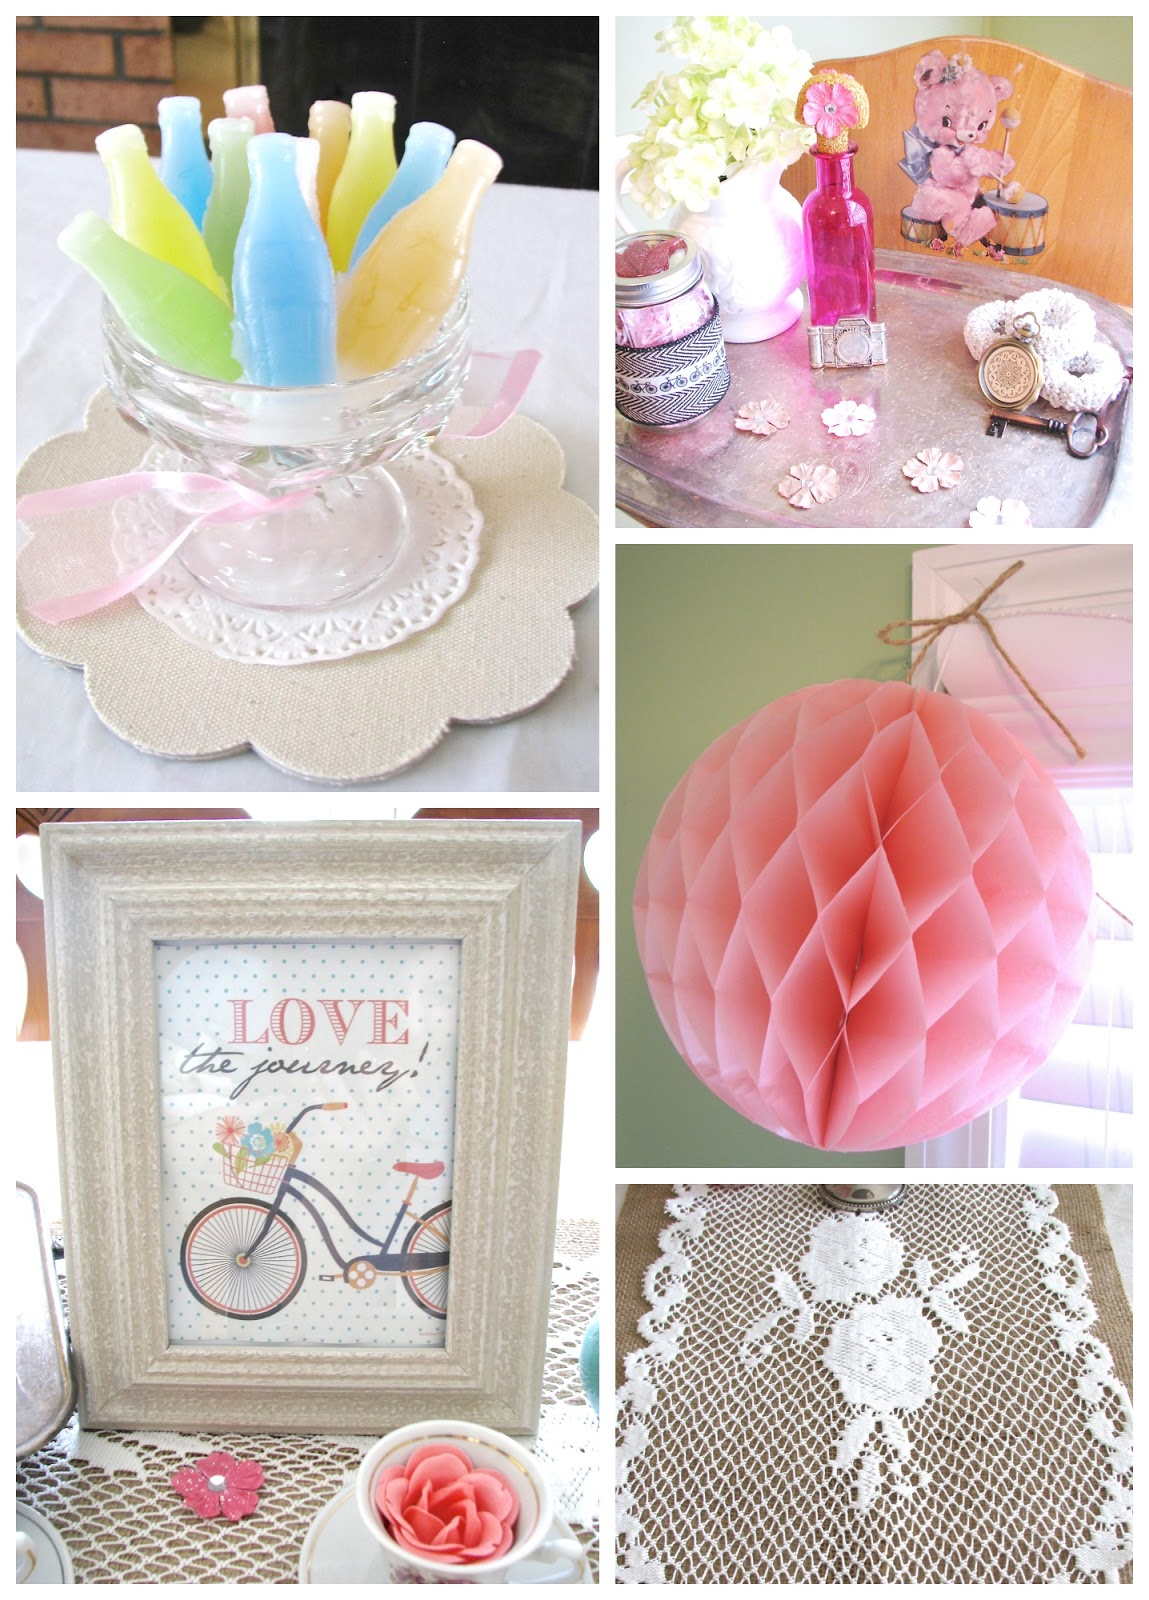 Vintage accessories used as party decor